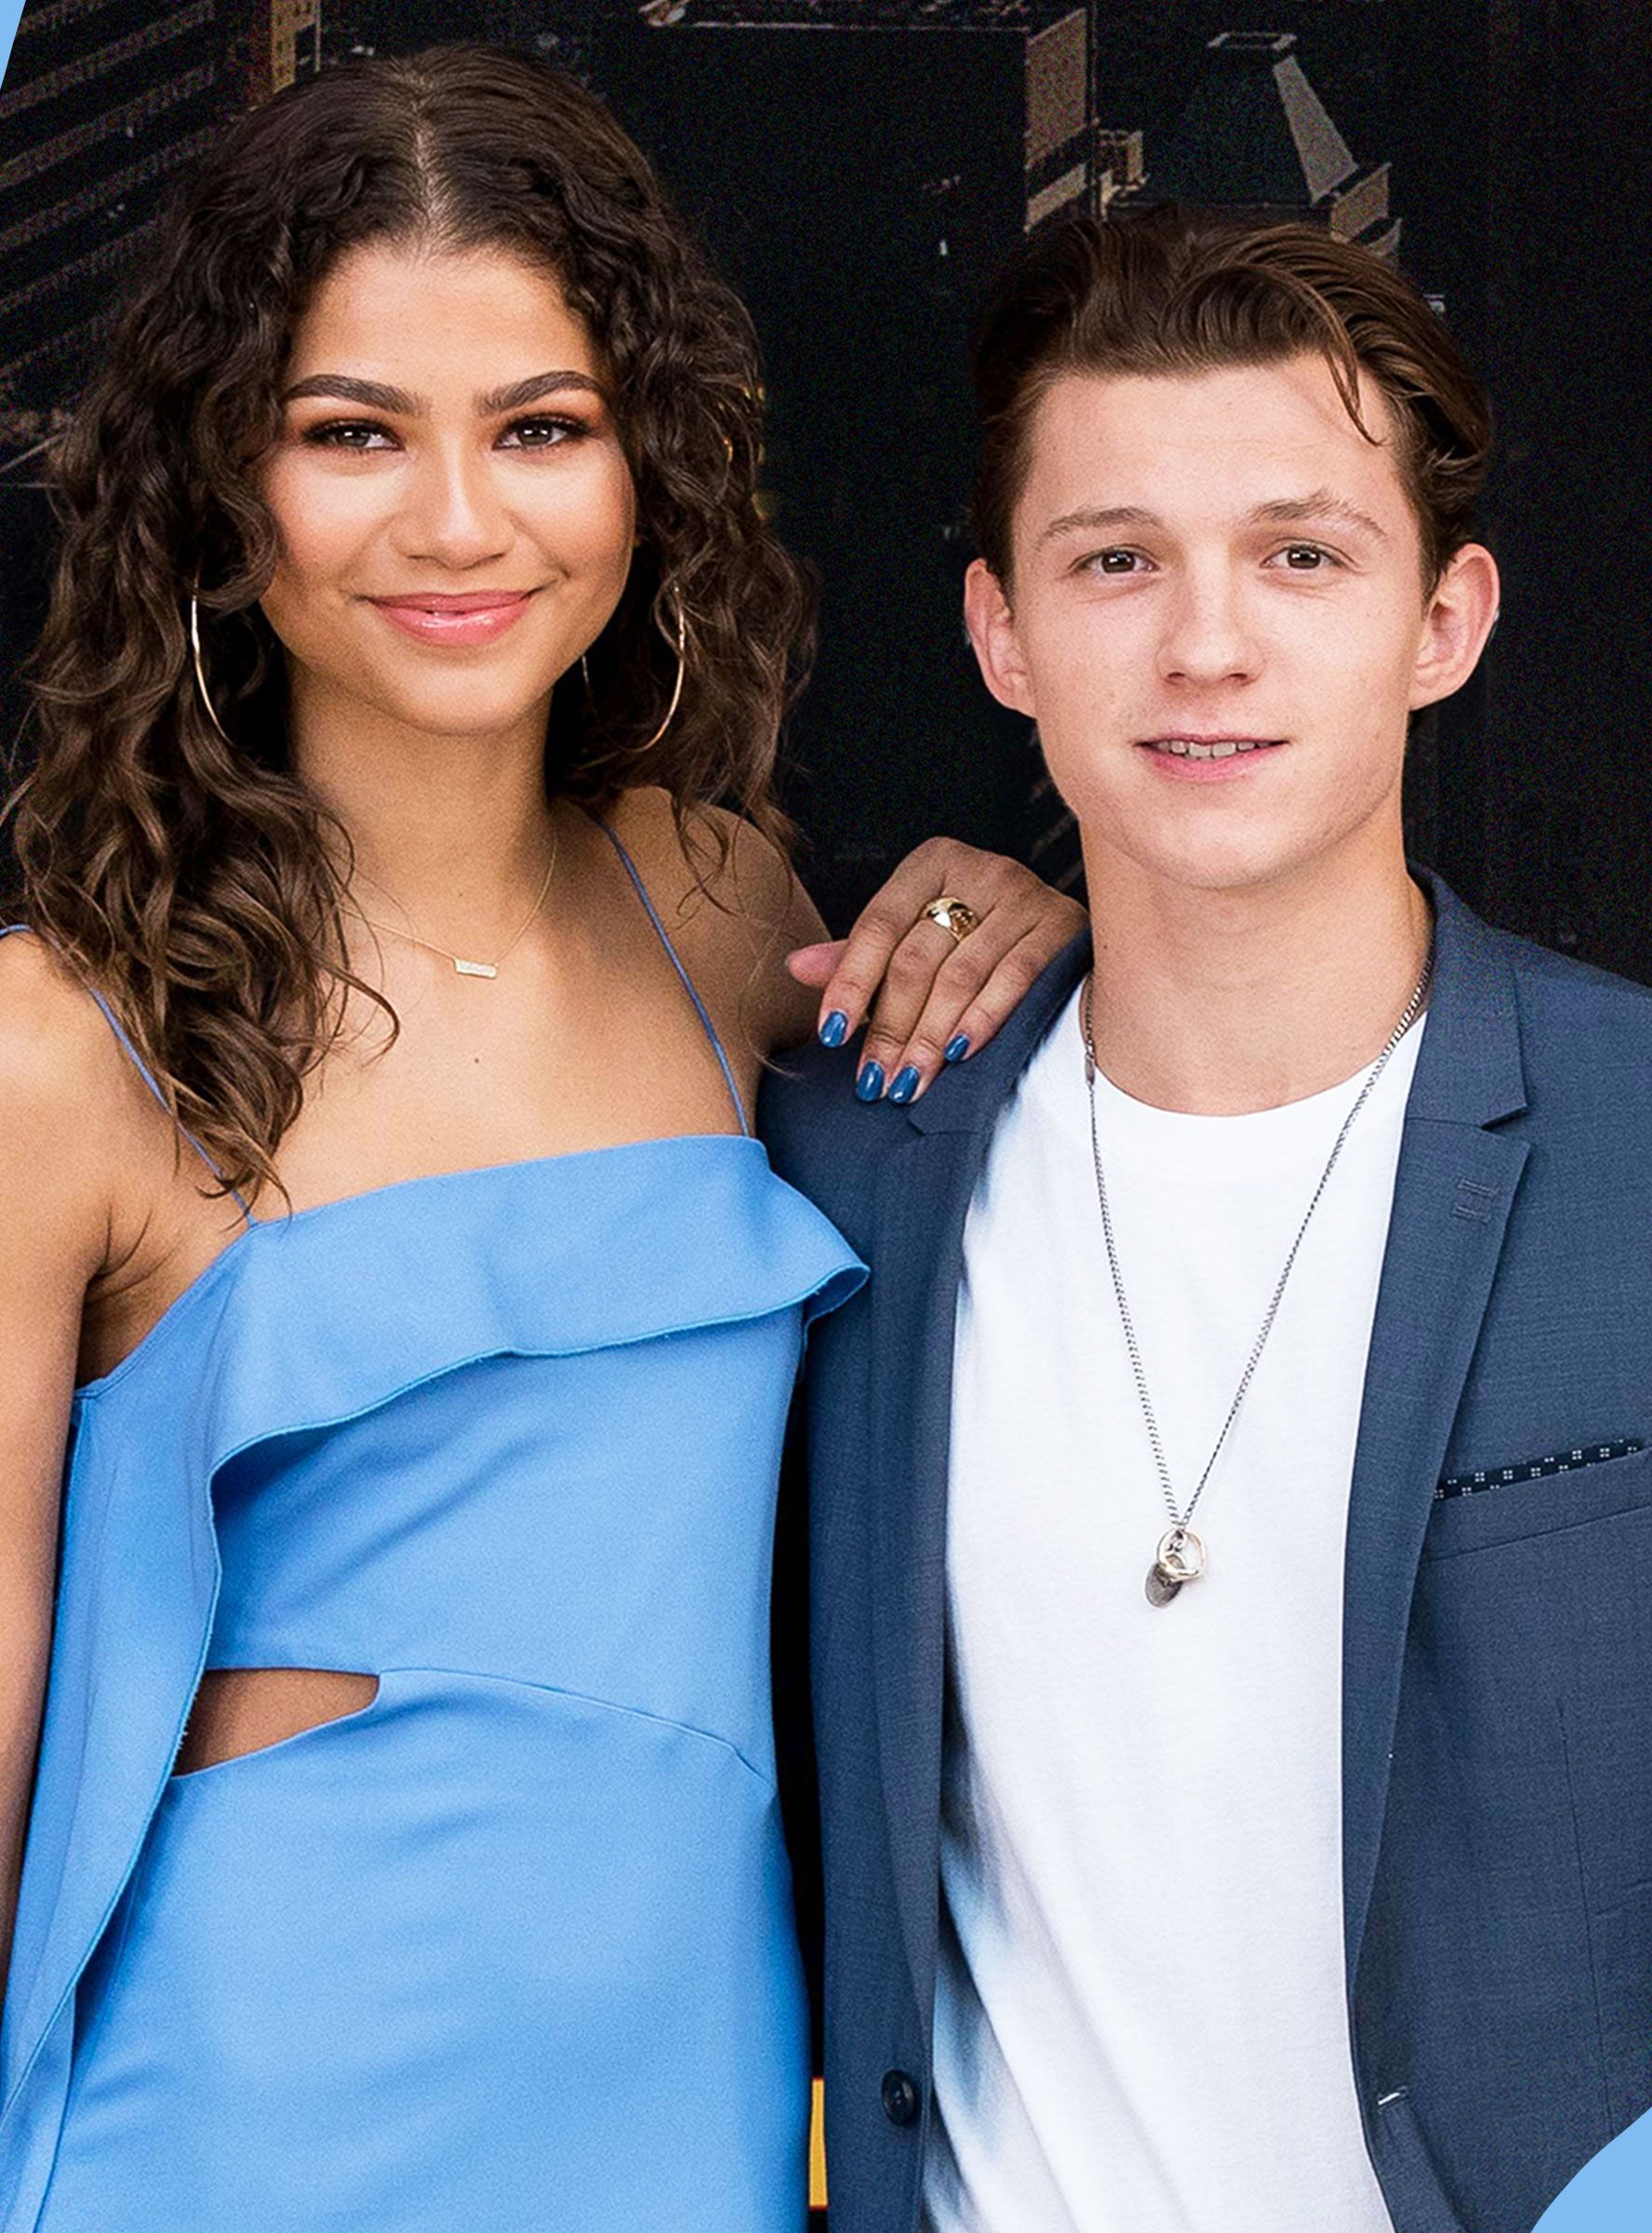 17b39d11d1c9 Zendaya Hilariously Calls Out Tom Holland For His Instagram Flub  https://r29.